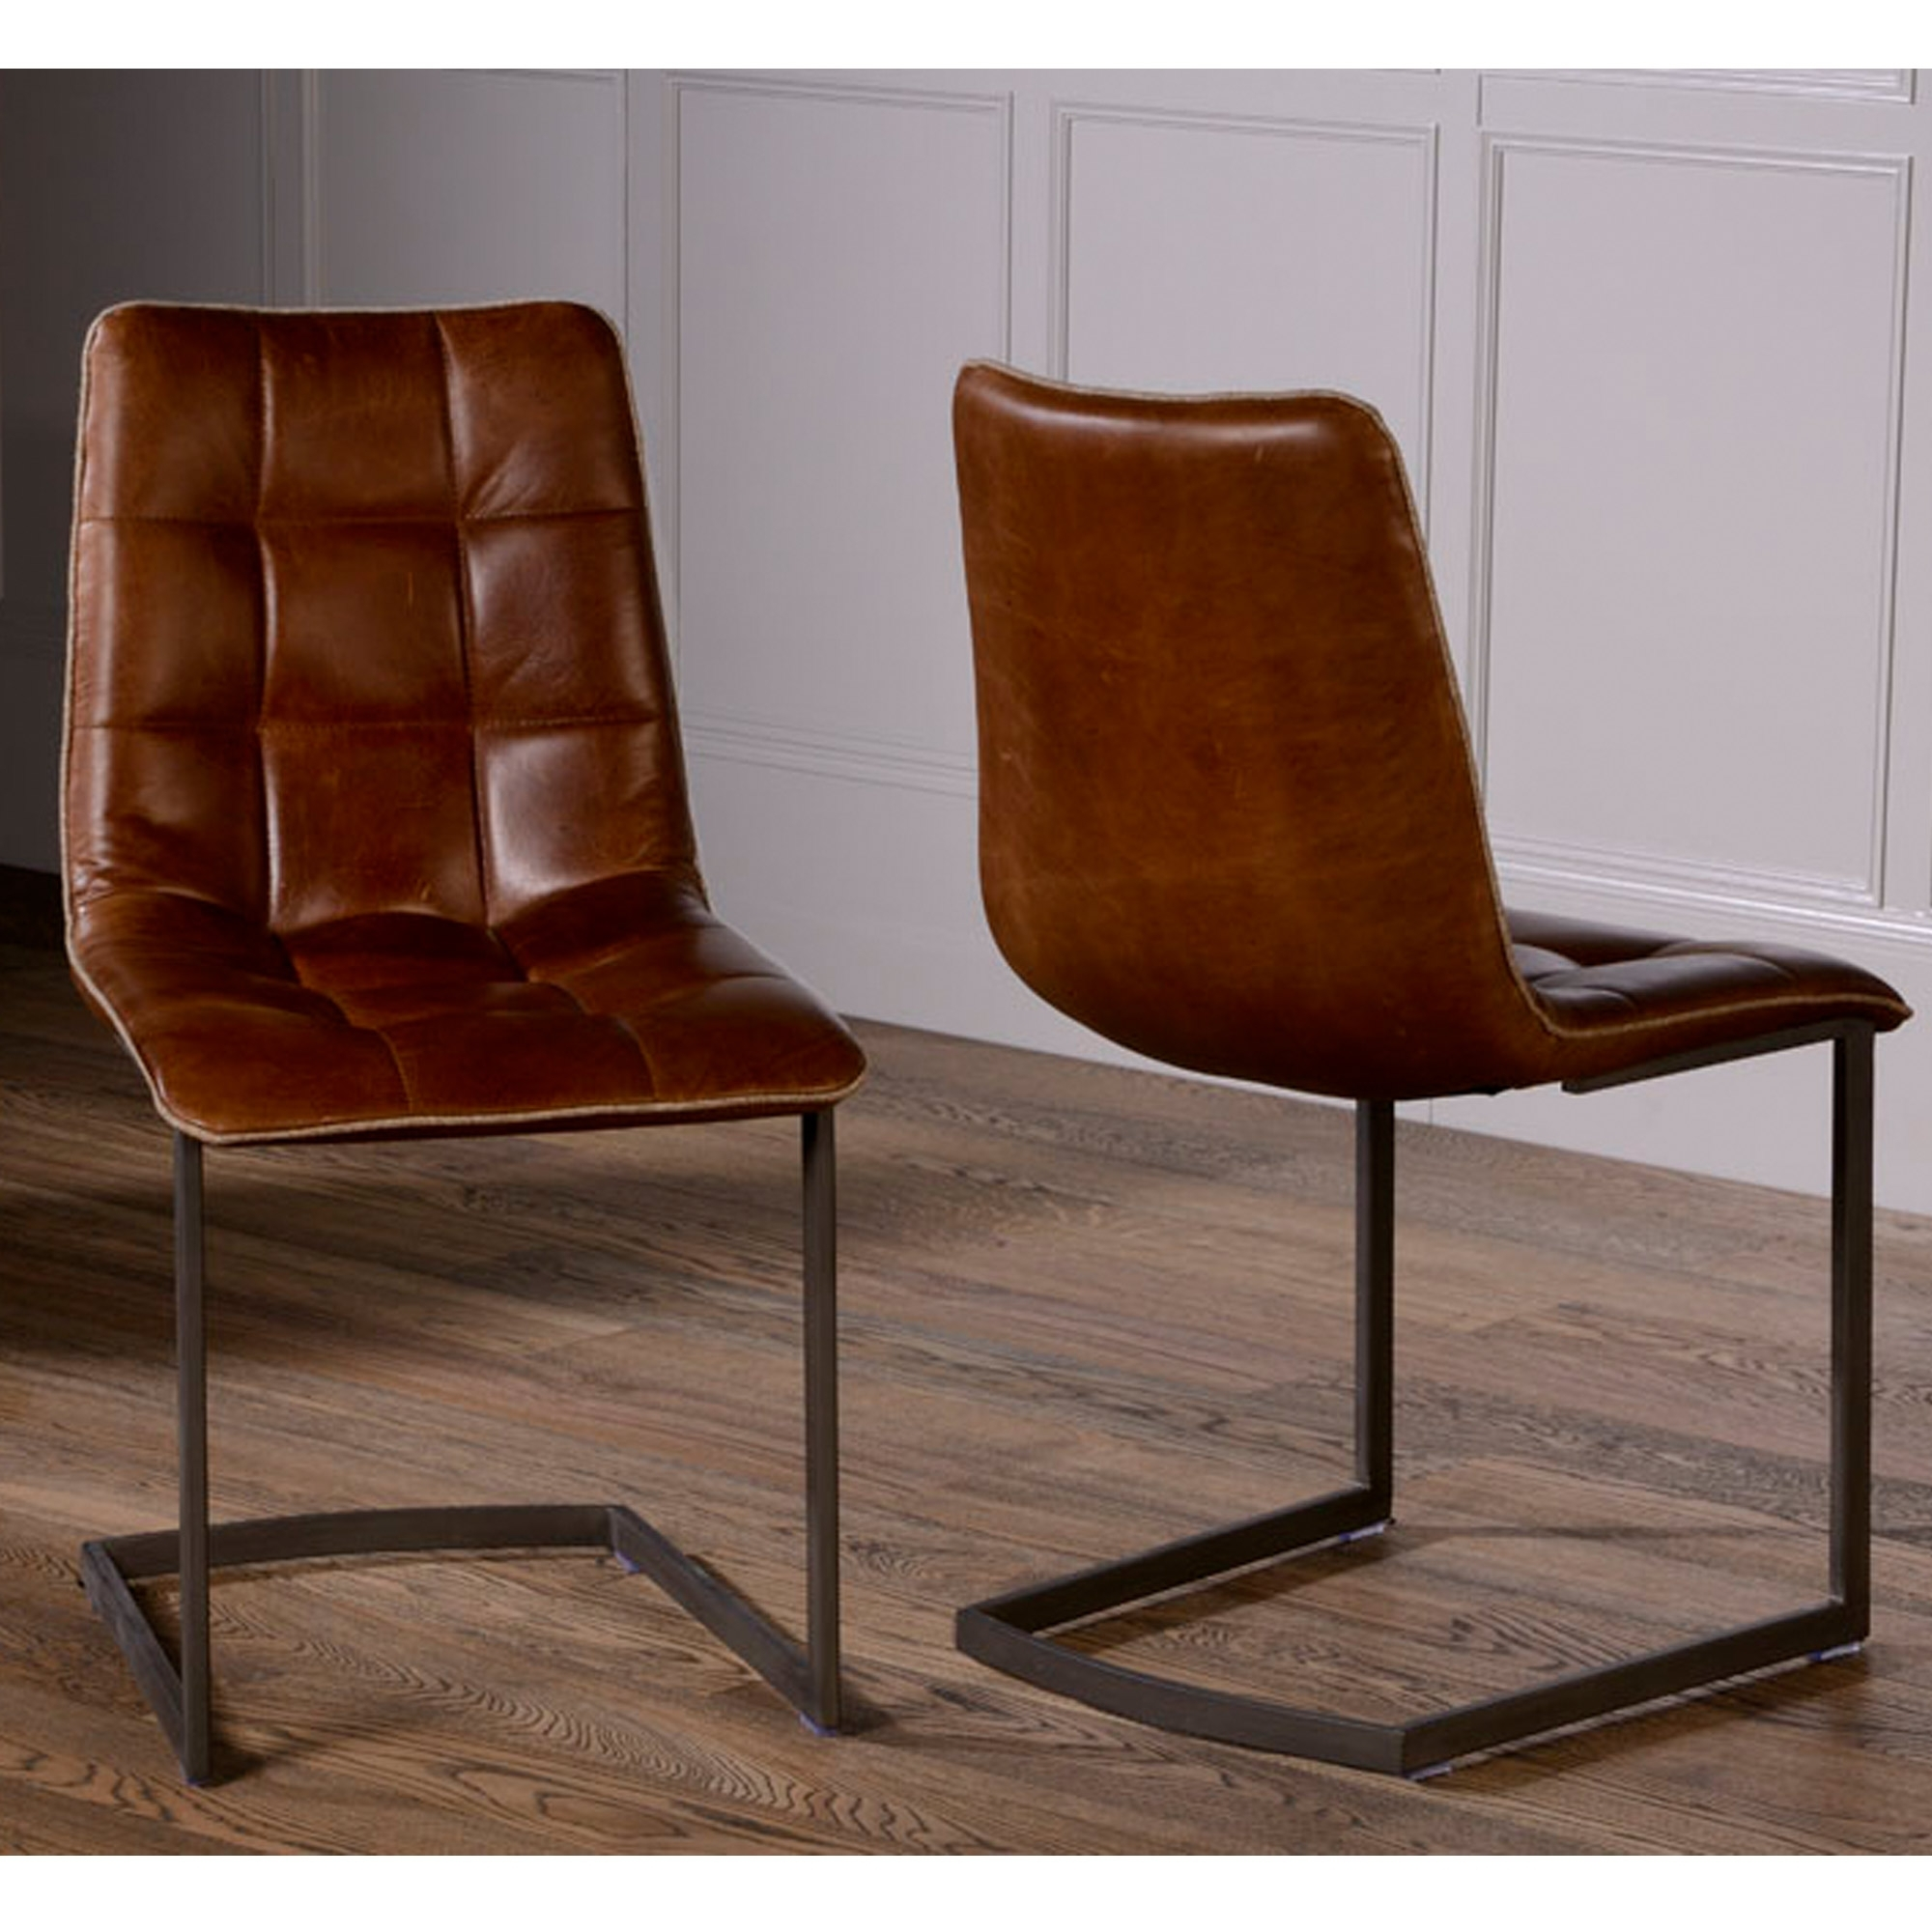 Leather Dining Chairs Regarding Most Current Related Keywords Suggestions For Leather Dining Chairs (View 7 of 25)